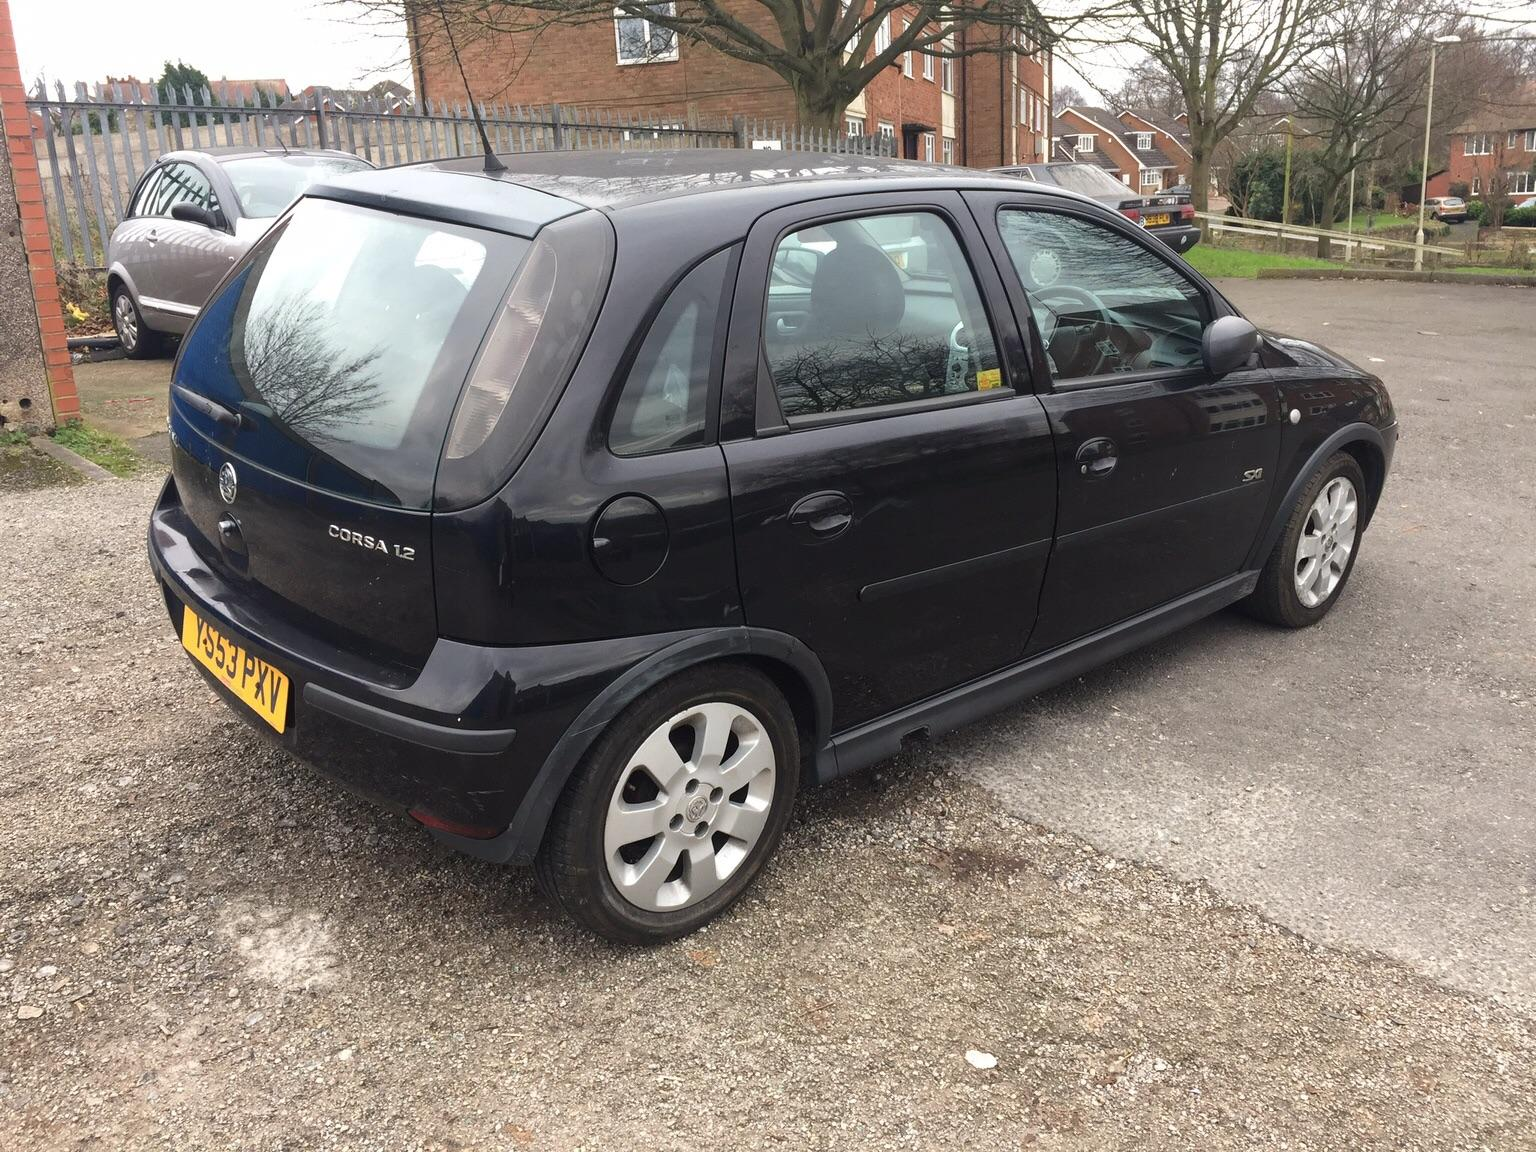 CORSA C 1.2 SXI 5DR ***Breaking*** in Dudley for free for ... on